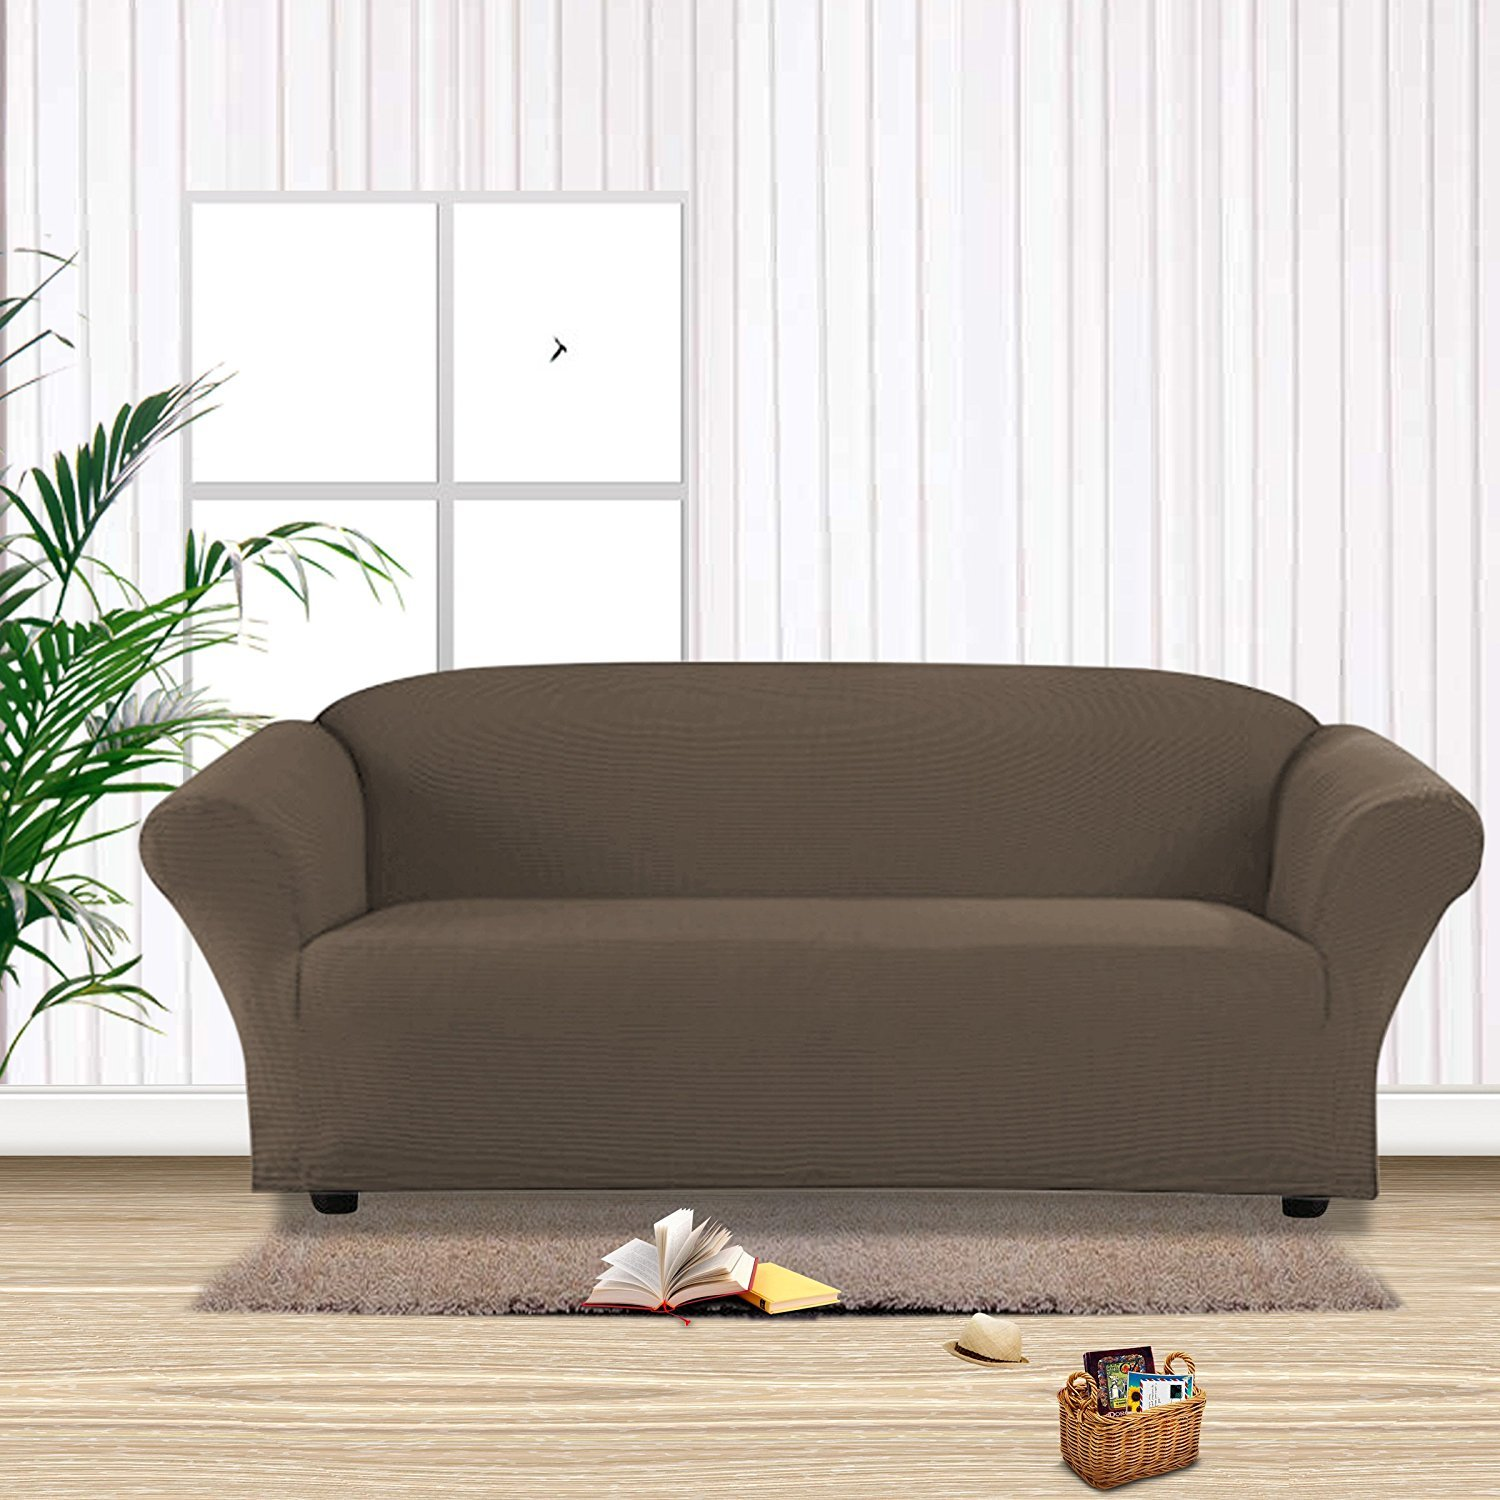 MB Collection Stretch Sofa Slipcover 1 Piece Sofa Bed Cover, Sofa Covers, Furniture Slipcover, Spandex Slipcovers (Taupe)